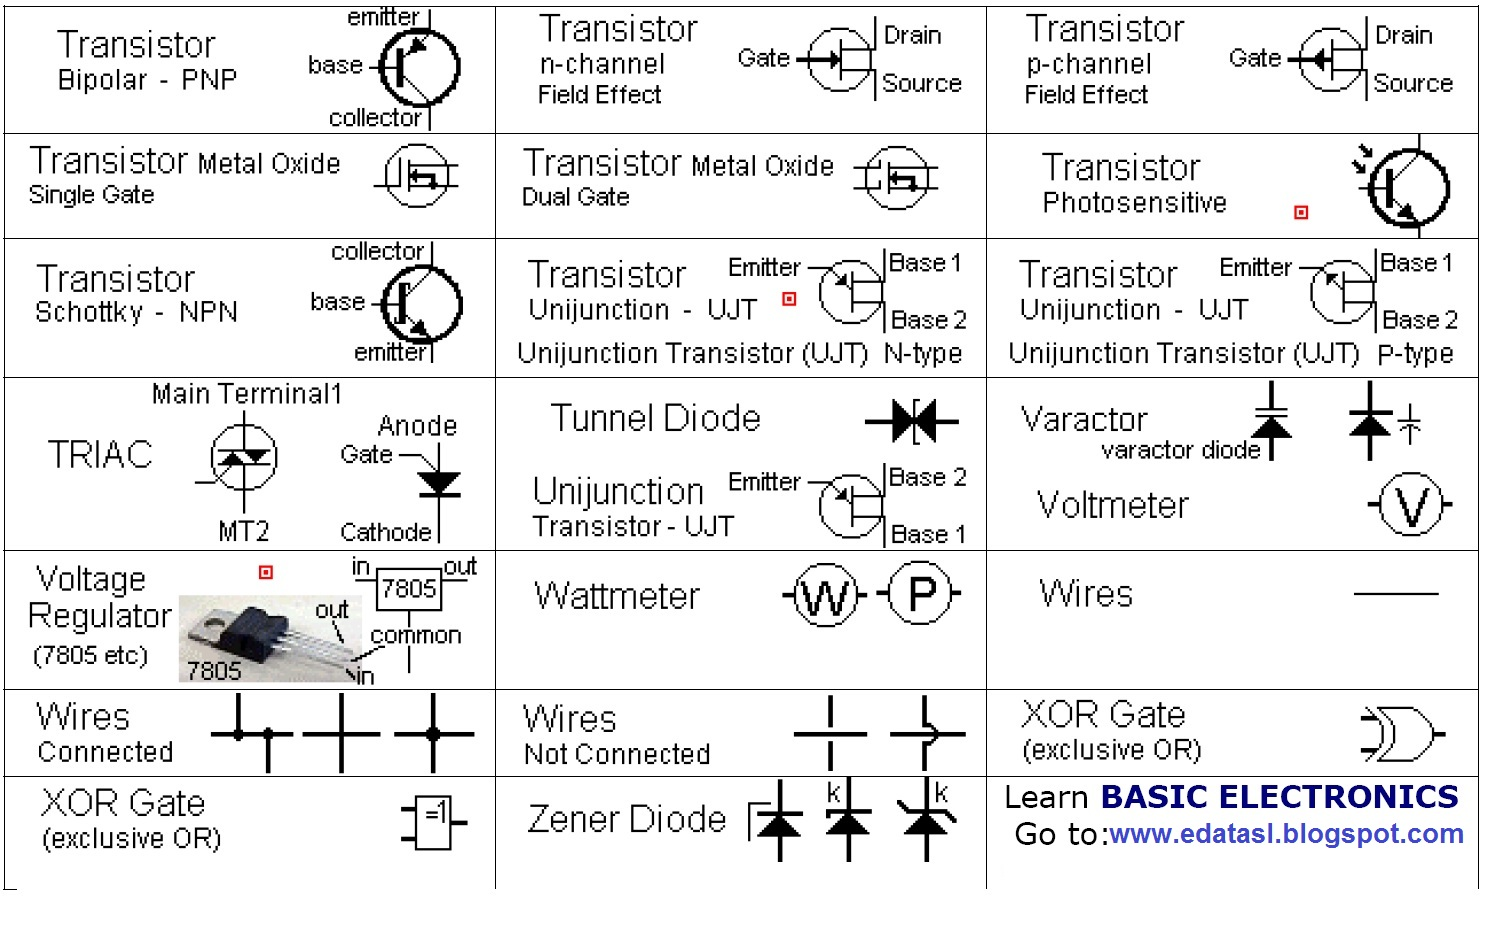 Automotive Wiring Diagram Symbols Residential Thermostat Electrical In Auto Get Free Image